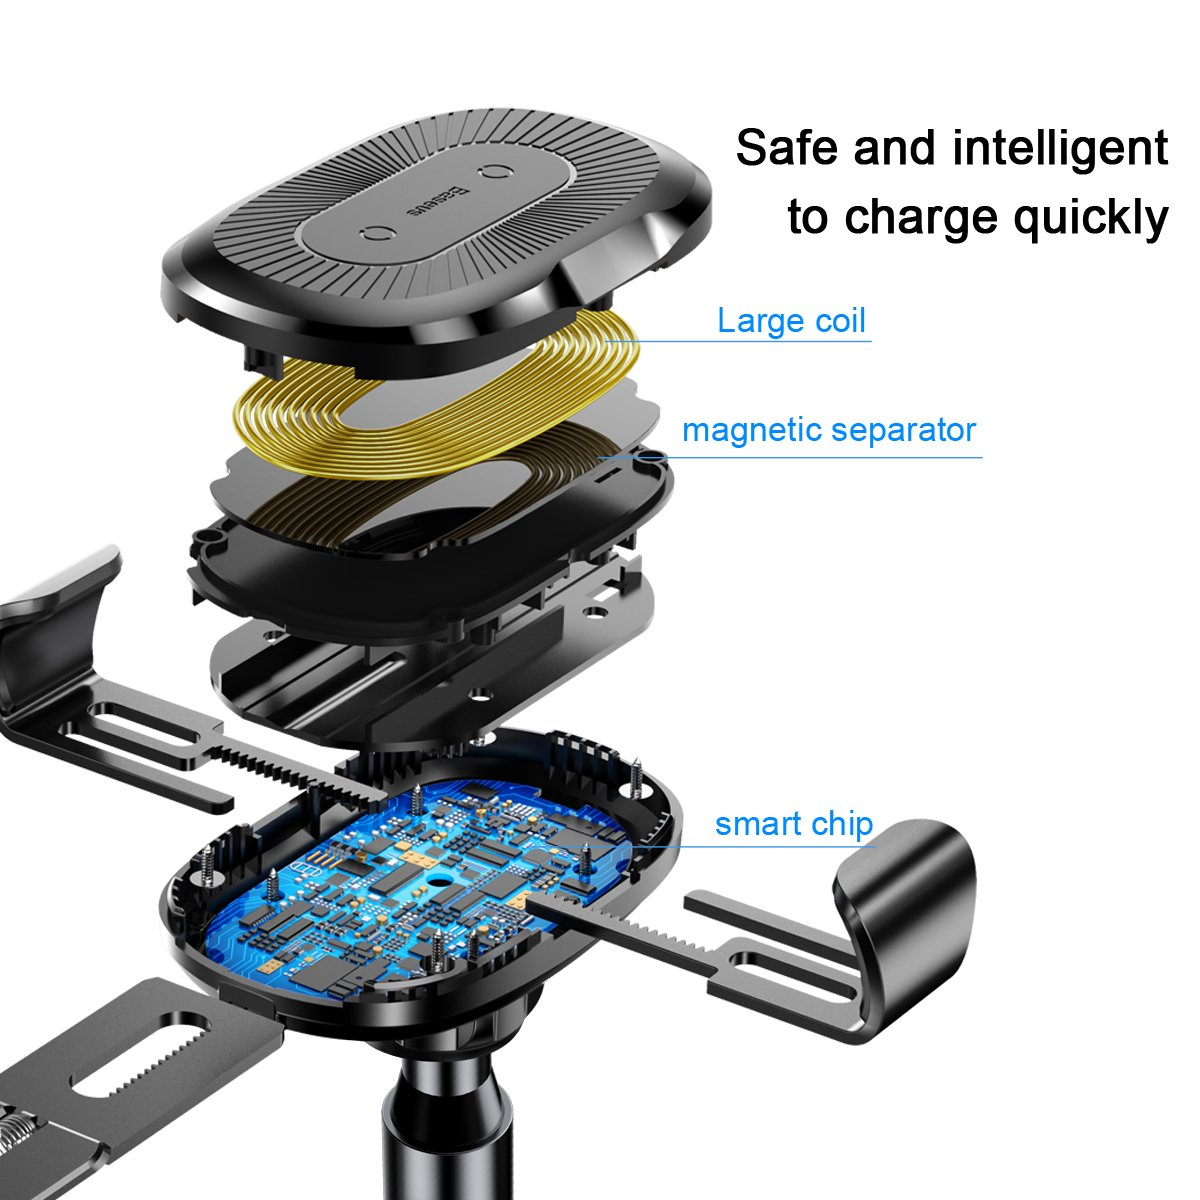 Auto Clamping 10W Qi Fast Charging Phone Holder Gravity Sensor Dashboard Cell Phone Holder for iPhone Xs Max//Xr//Xs//X//8 Plus//8 Baseus Wireless Car Charger Mount Samsung Galaxy S10//S10+//S10e//S9//S9+